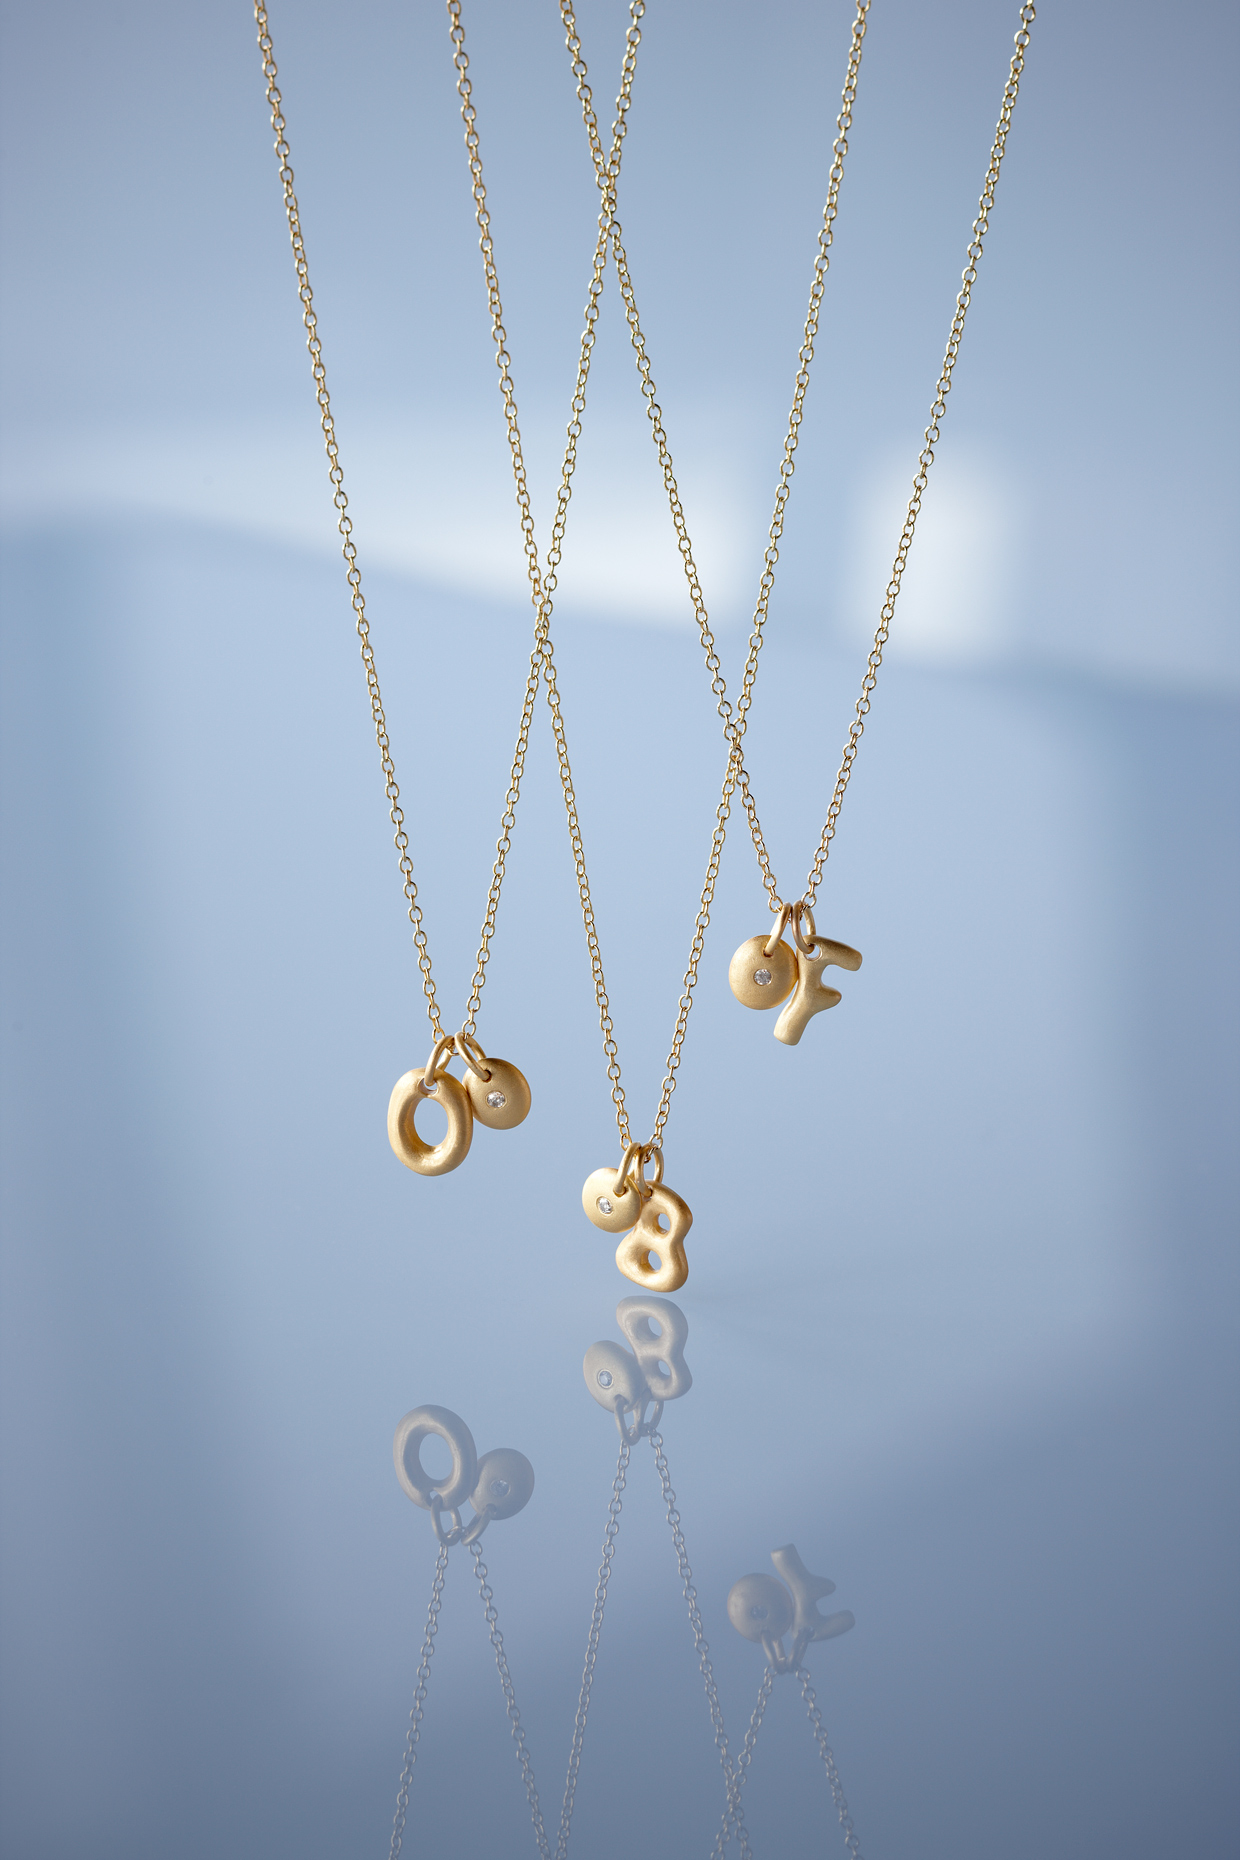 Product photography Jewelry Derek Israelsen Gold Letter Necklace